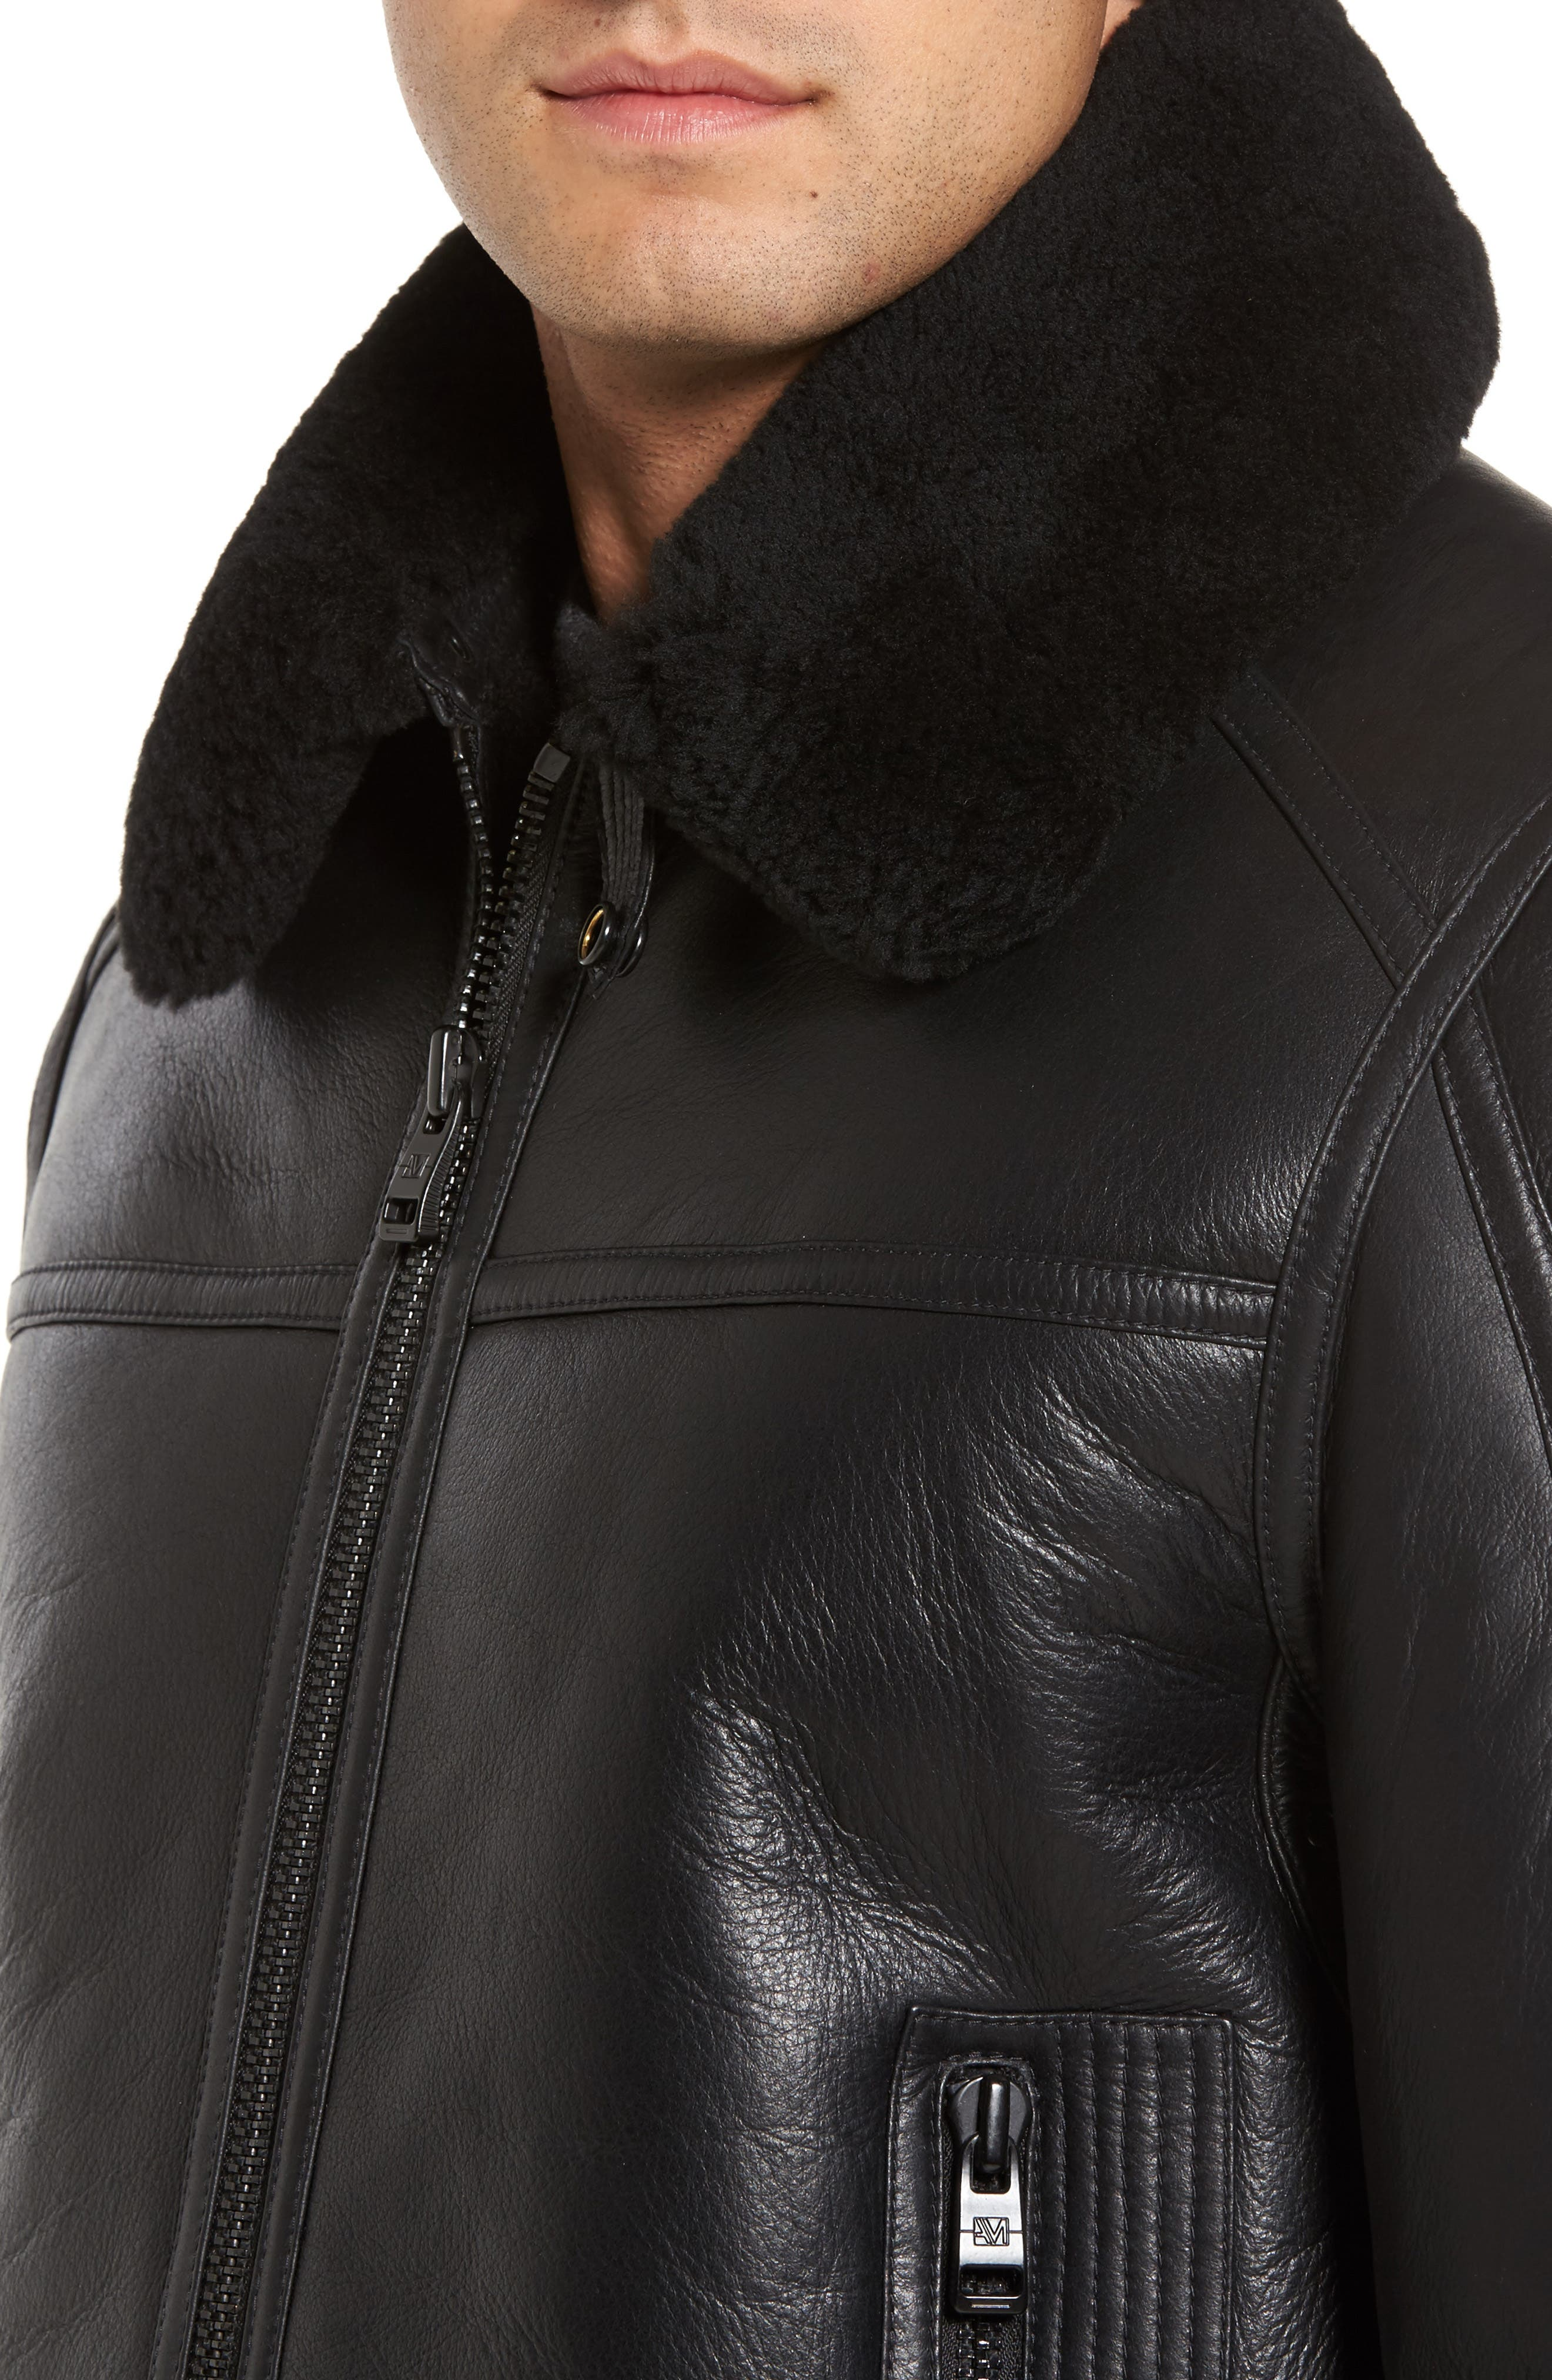 Leather Jacket with Genuine Shearling Collar,                             Alternate thumbnail 4, color,                             Black